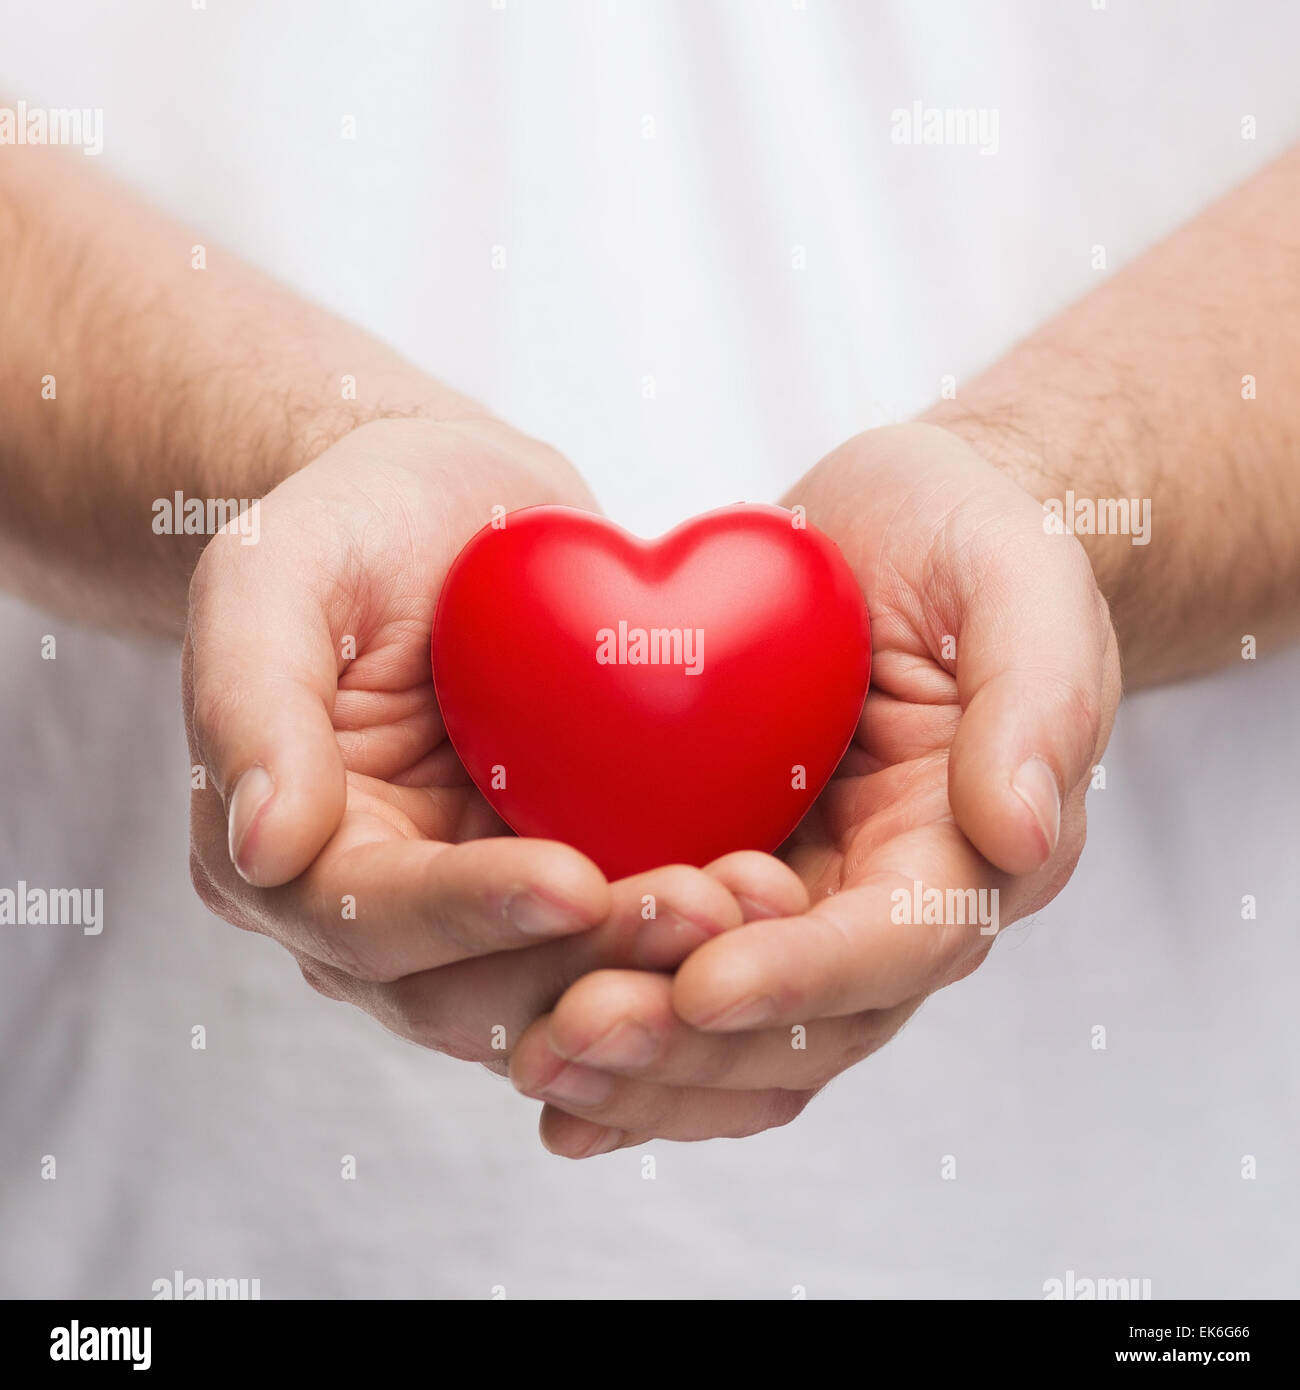 mans cupped hands showing red heart - Stock Image